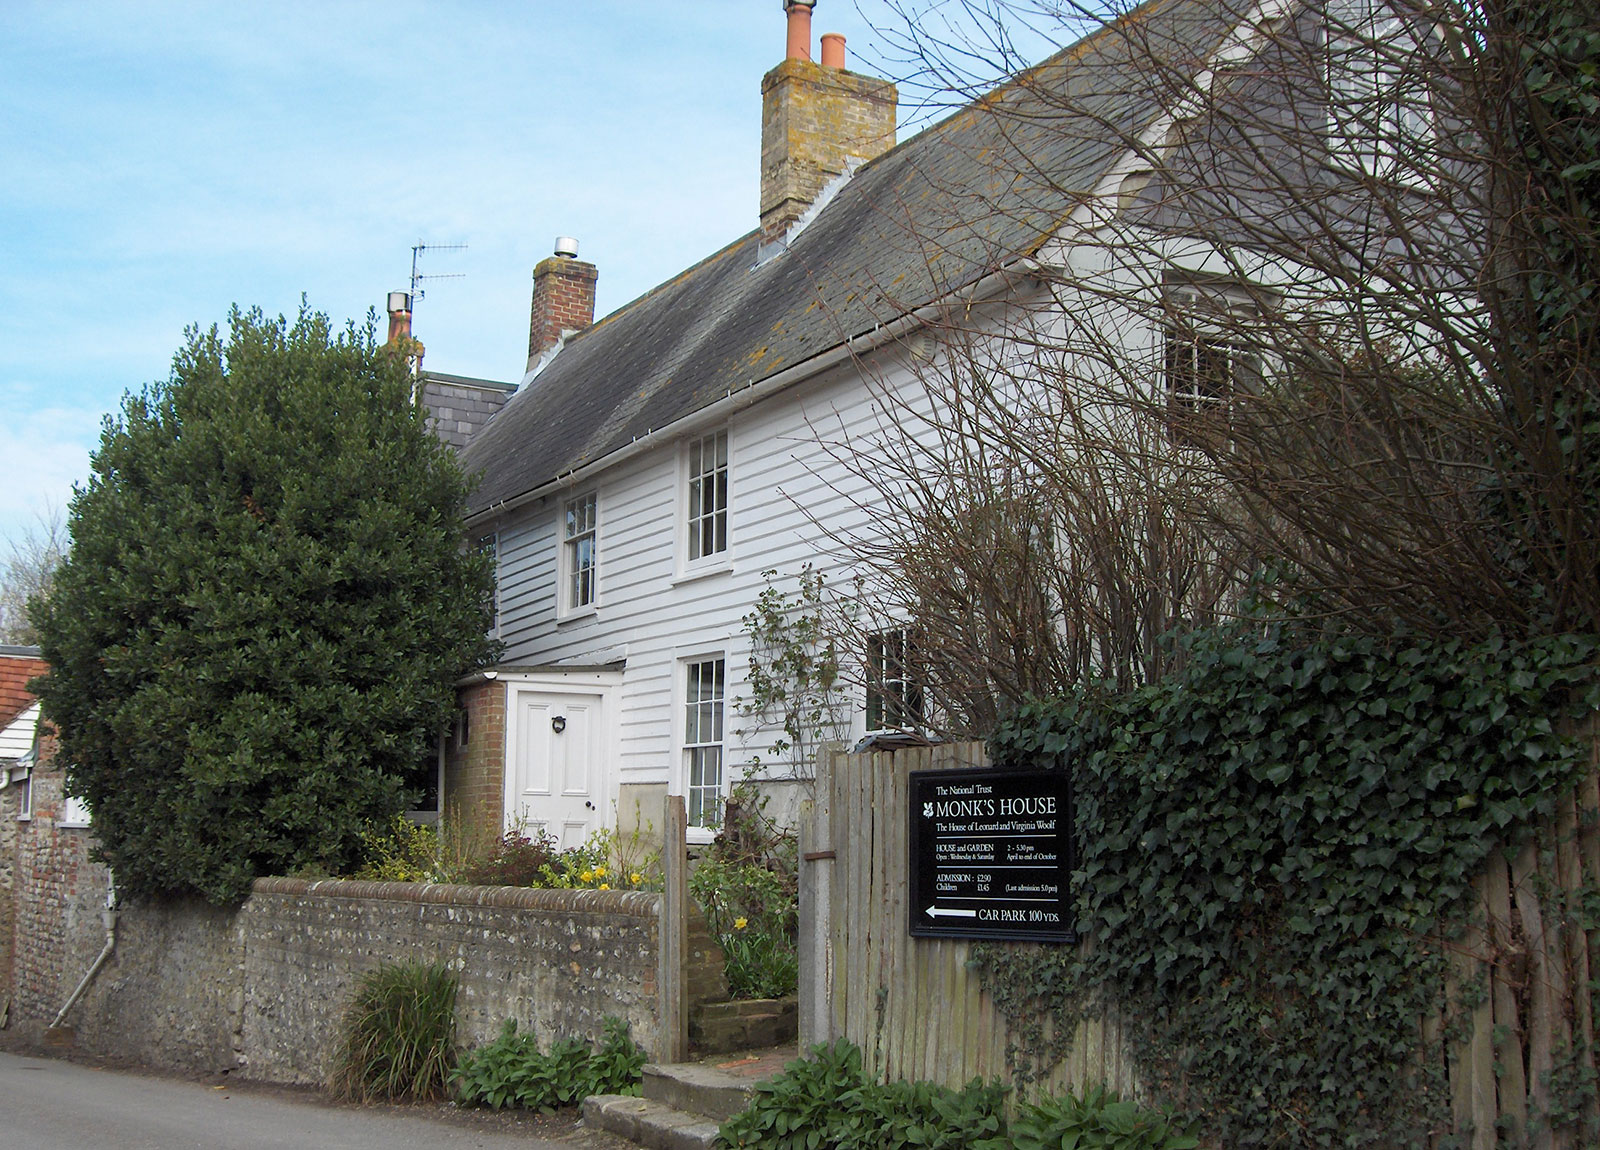 Writer Virginia Woolf's former home, Monk's House